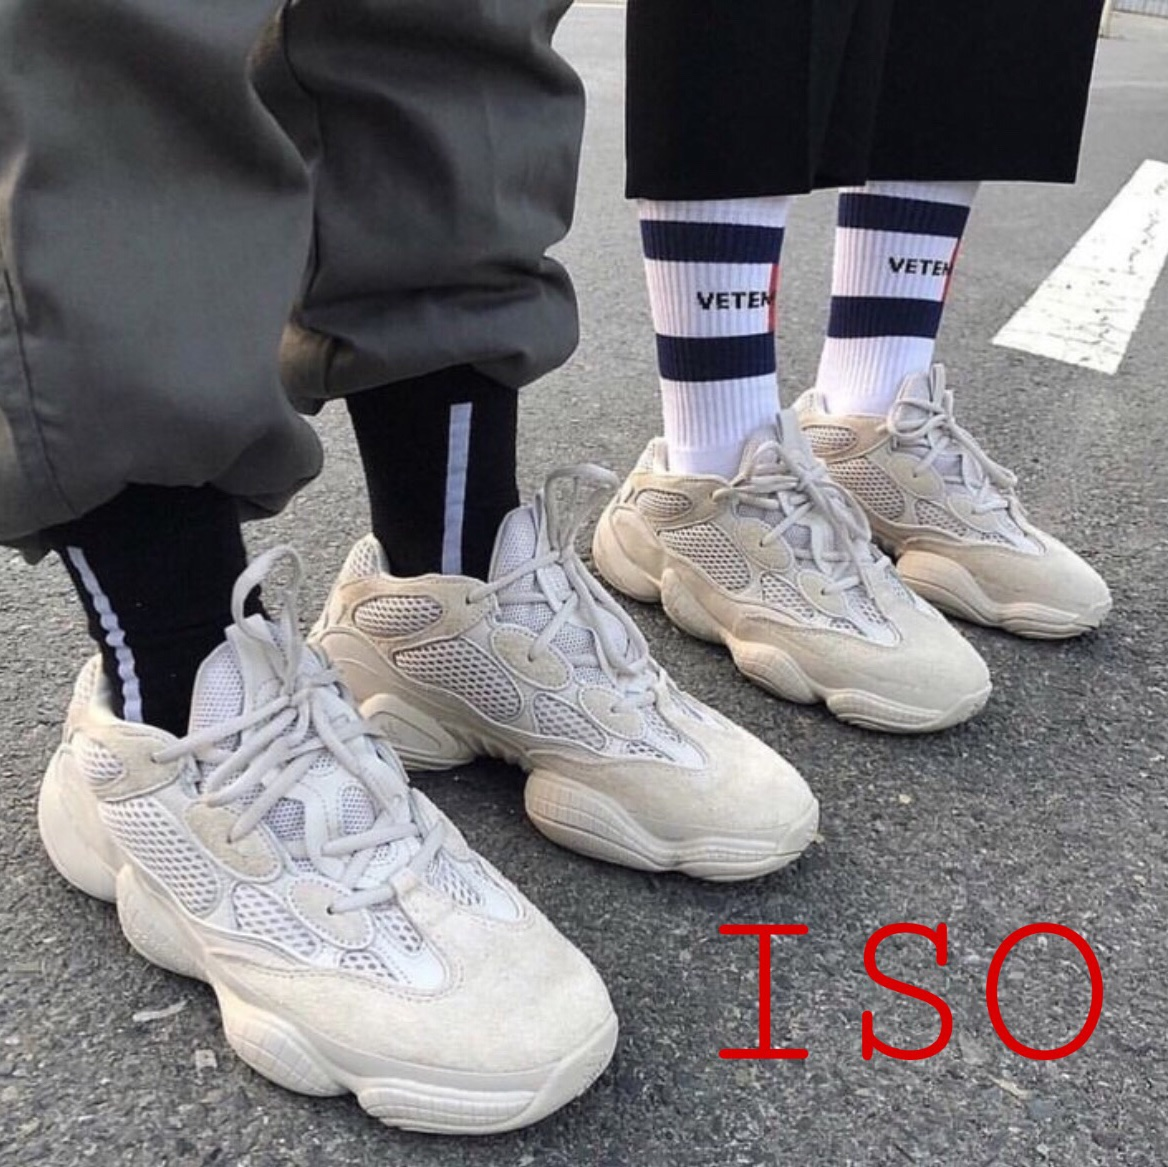 separation shoes 15865 49ae1 LOOKING FOR YEEZY 500 BLUSH WOMENS SIZE 6 MENS... - Depop